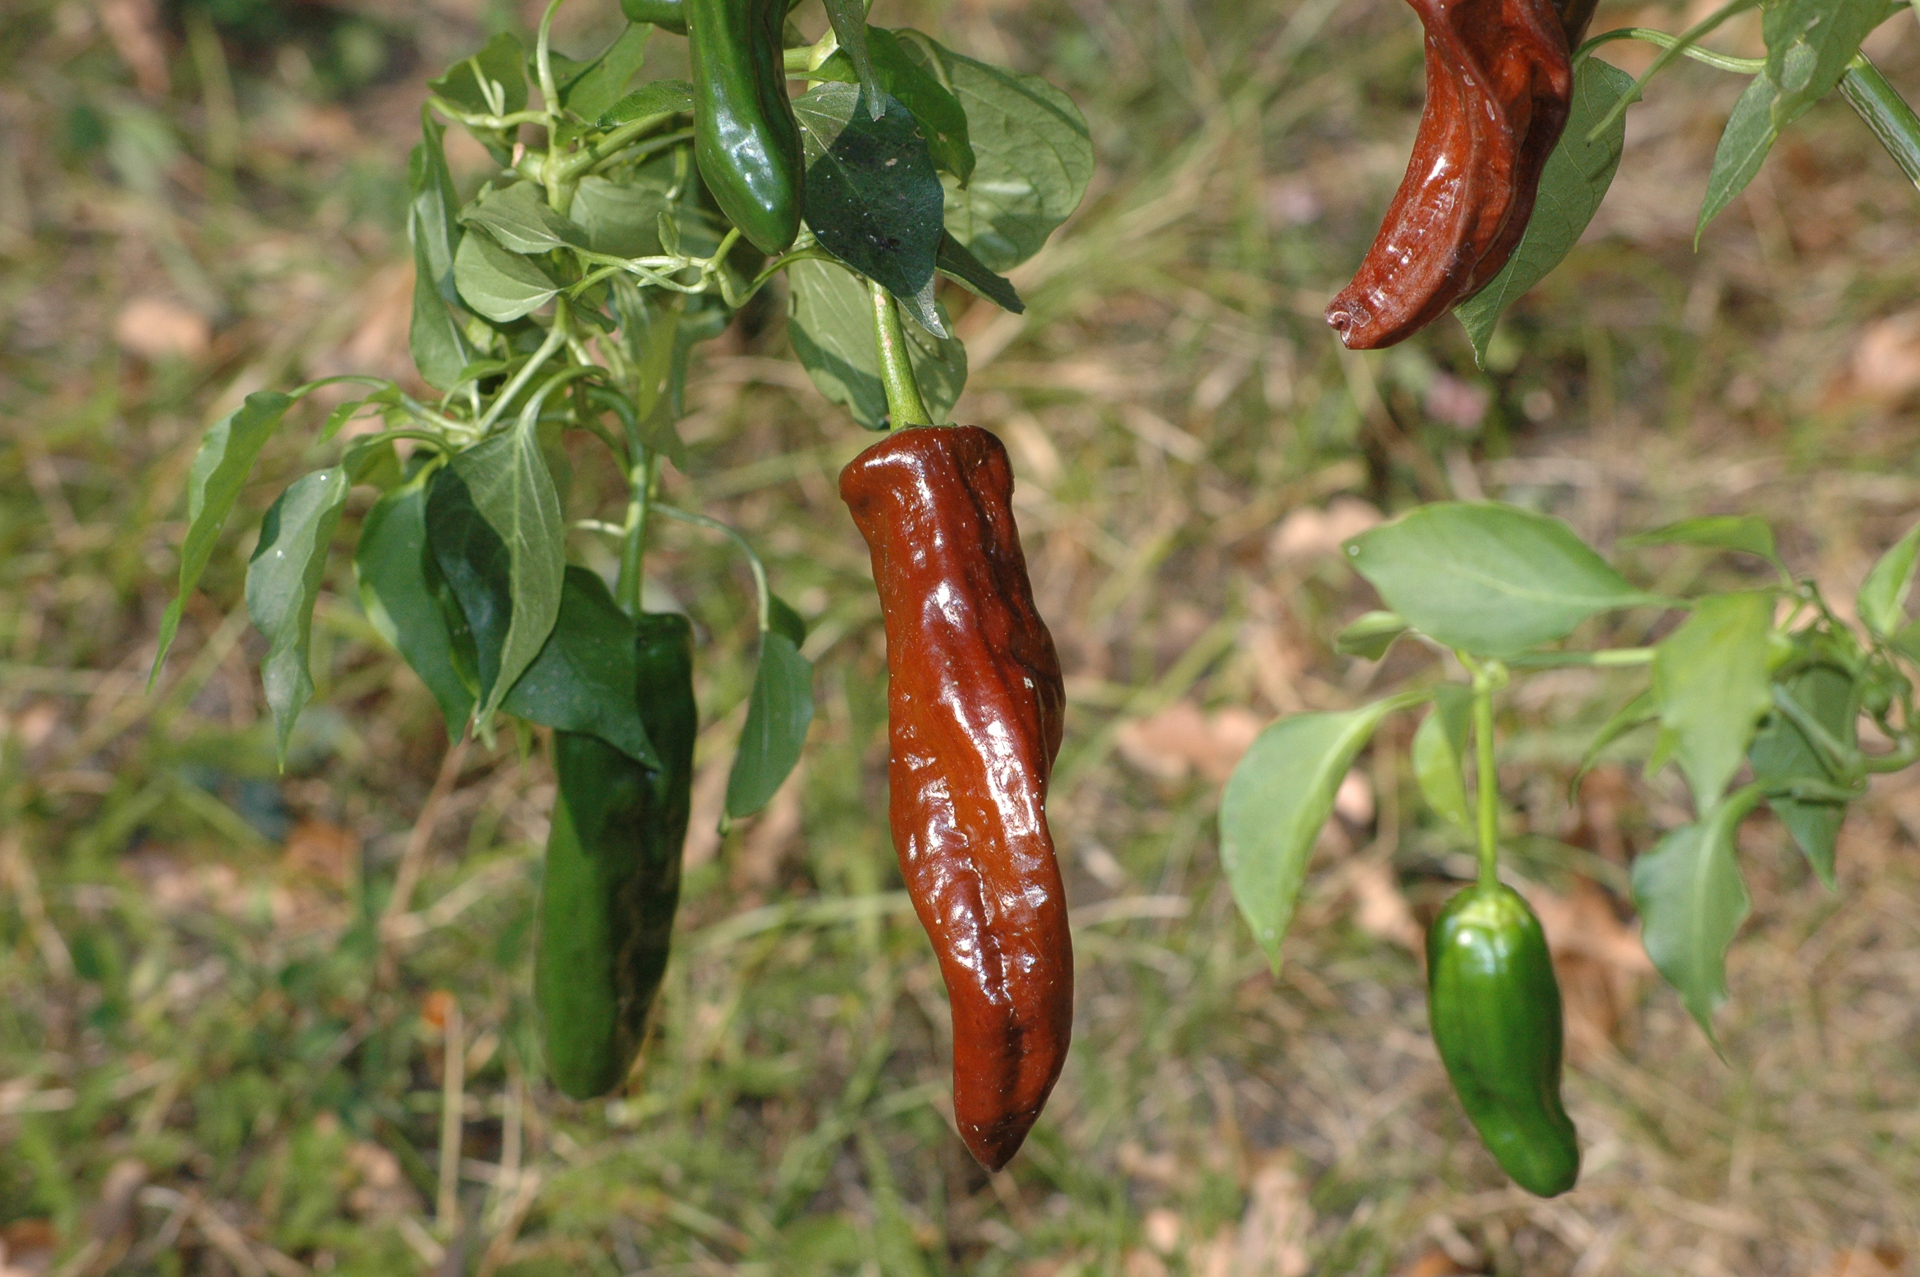 PI 446900 - Capsicum sp. - Chilisorte